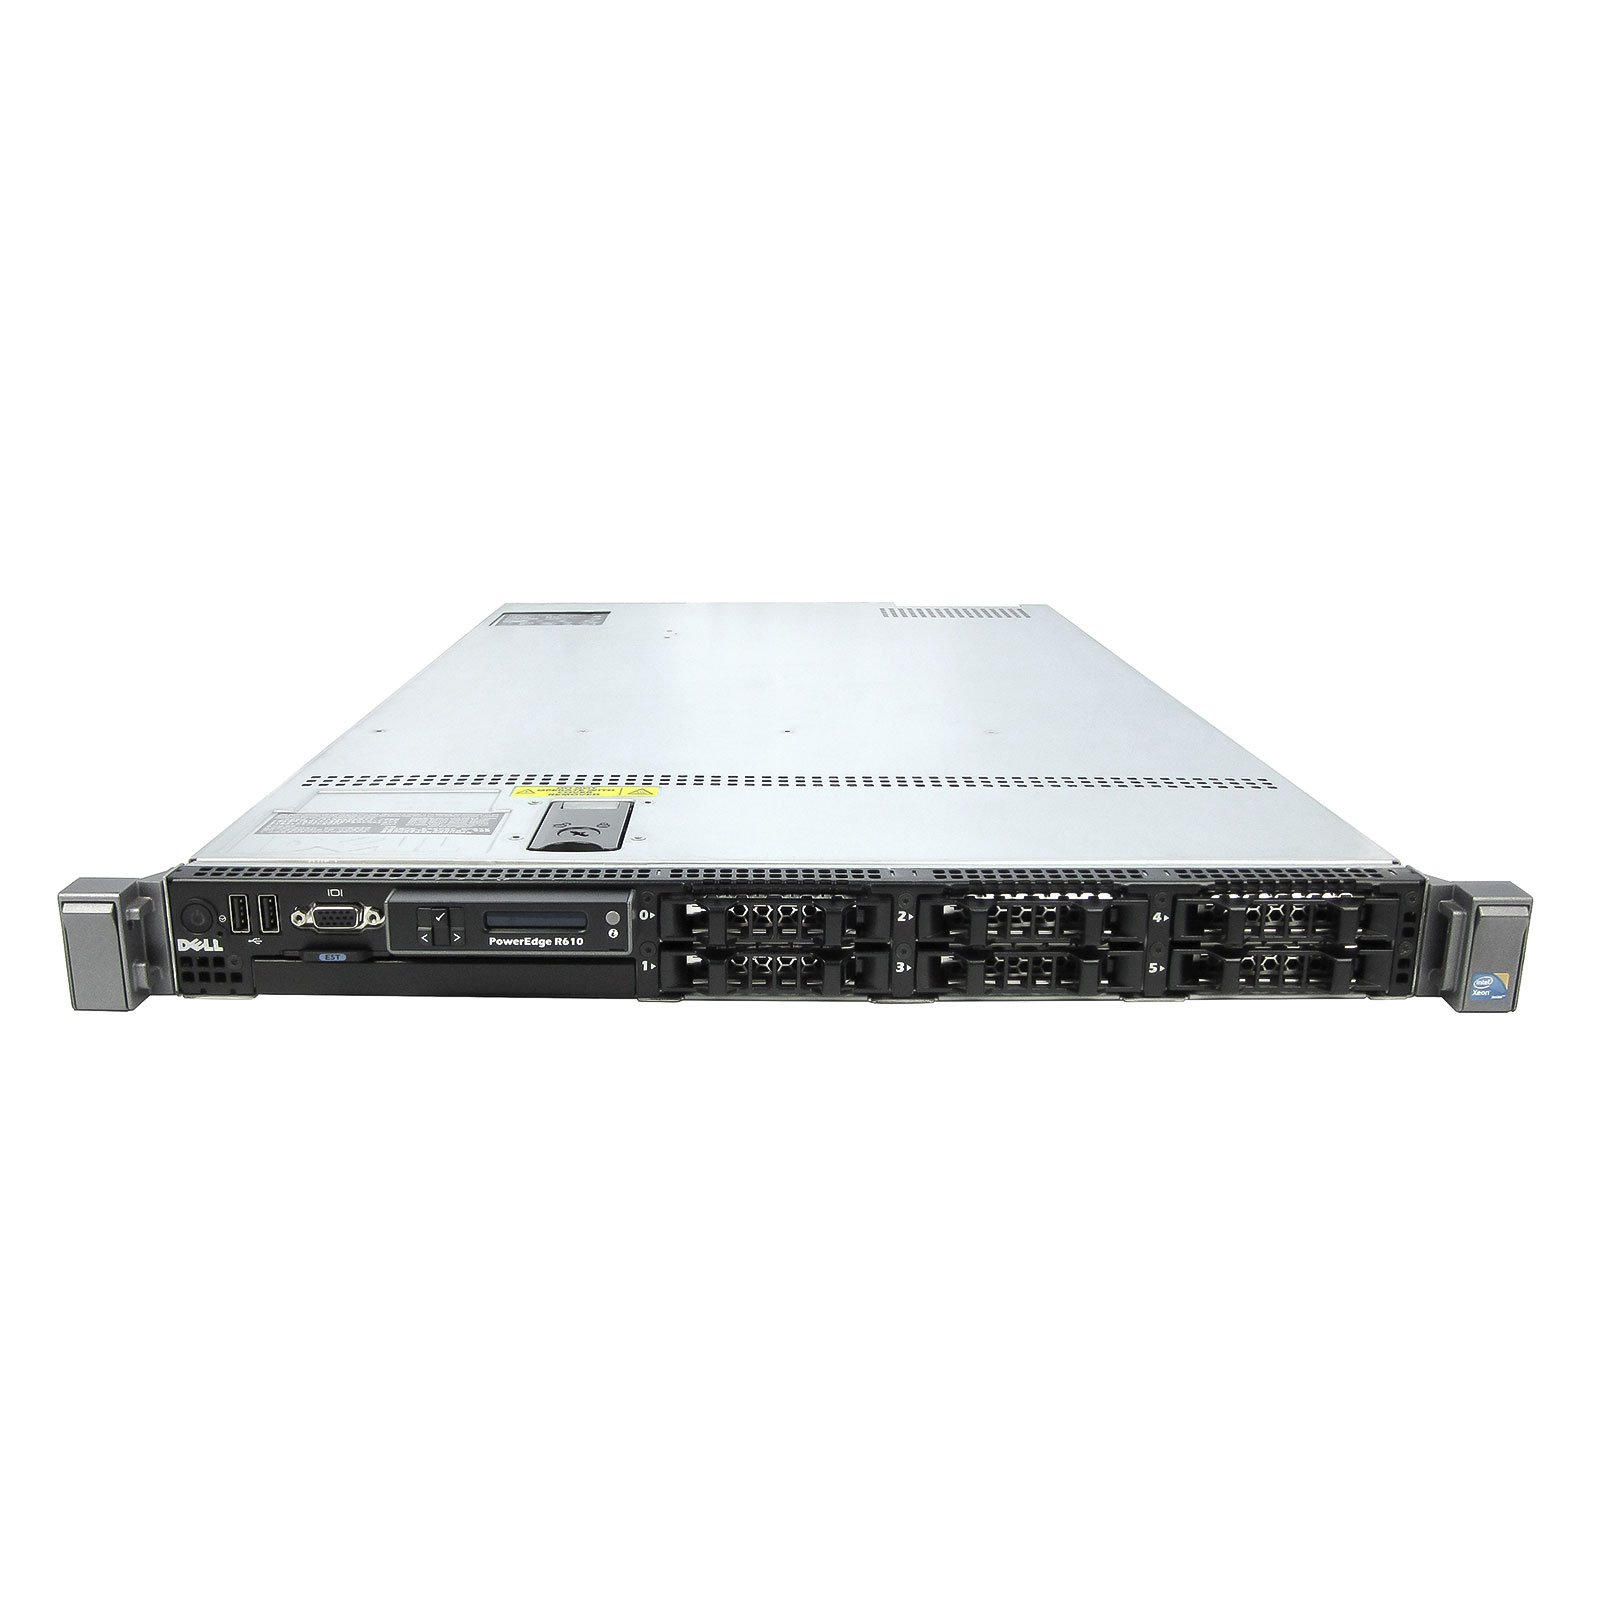 Energy-Efficient Economy DELL R610 Server 2x 2.26Ghz L5520 QC 48GB 2x 160GB SSD (Certified Refurbished) by TechMikeNY (Image #2)